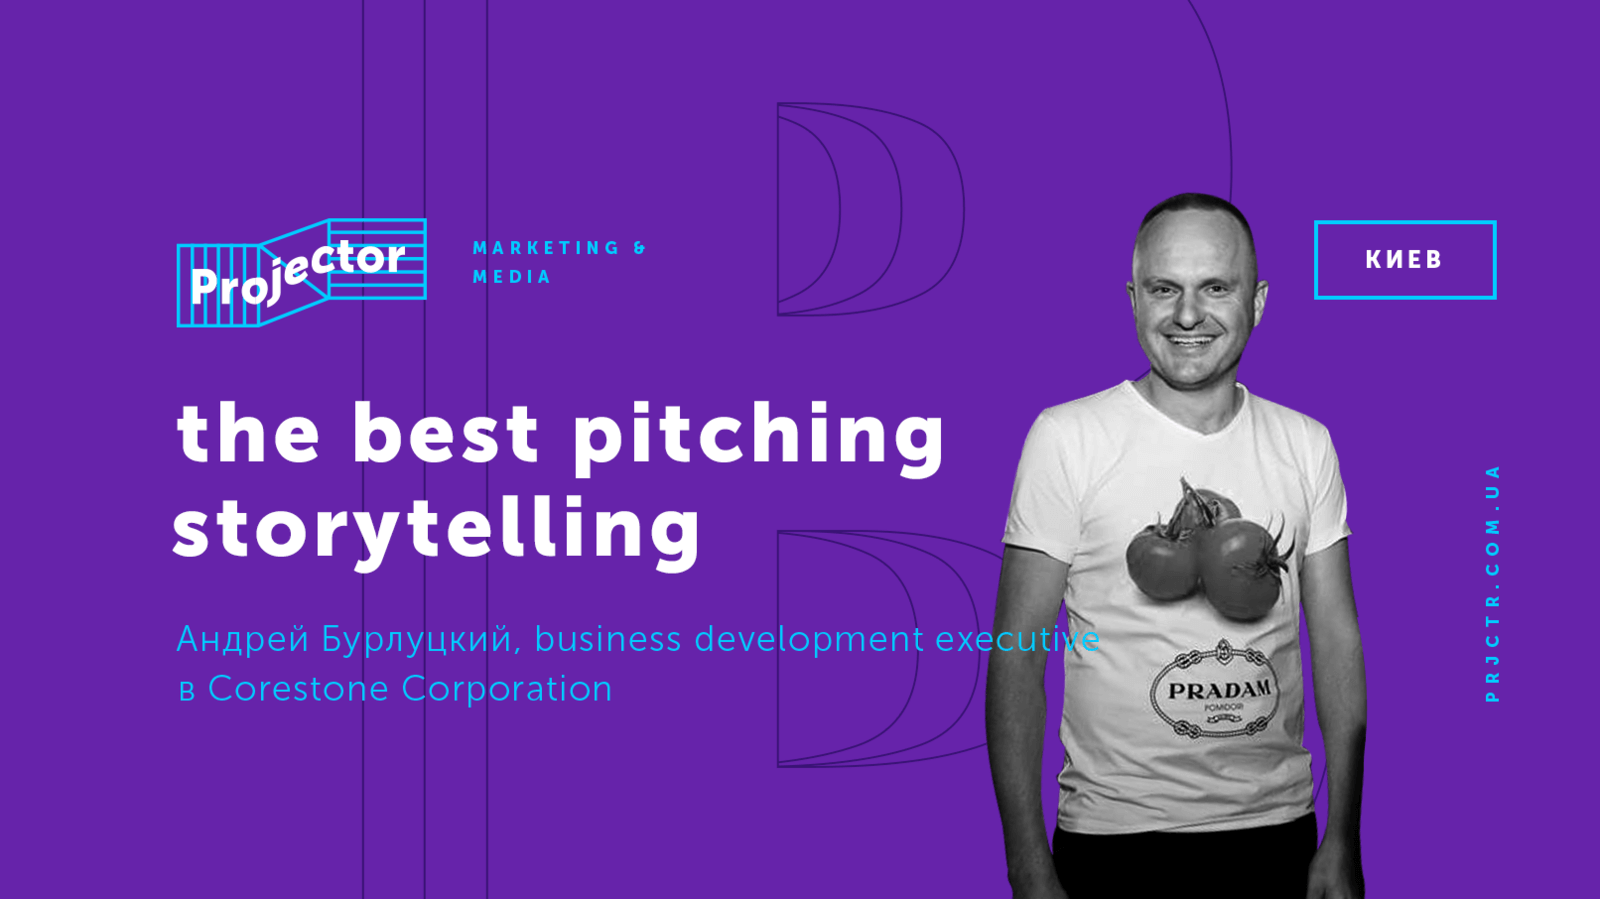 The best pitching storytelling